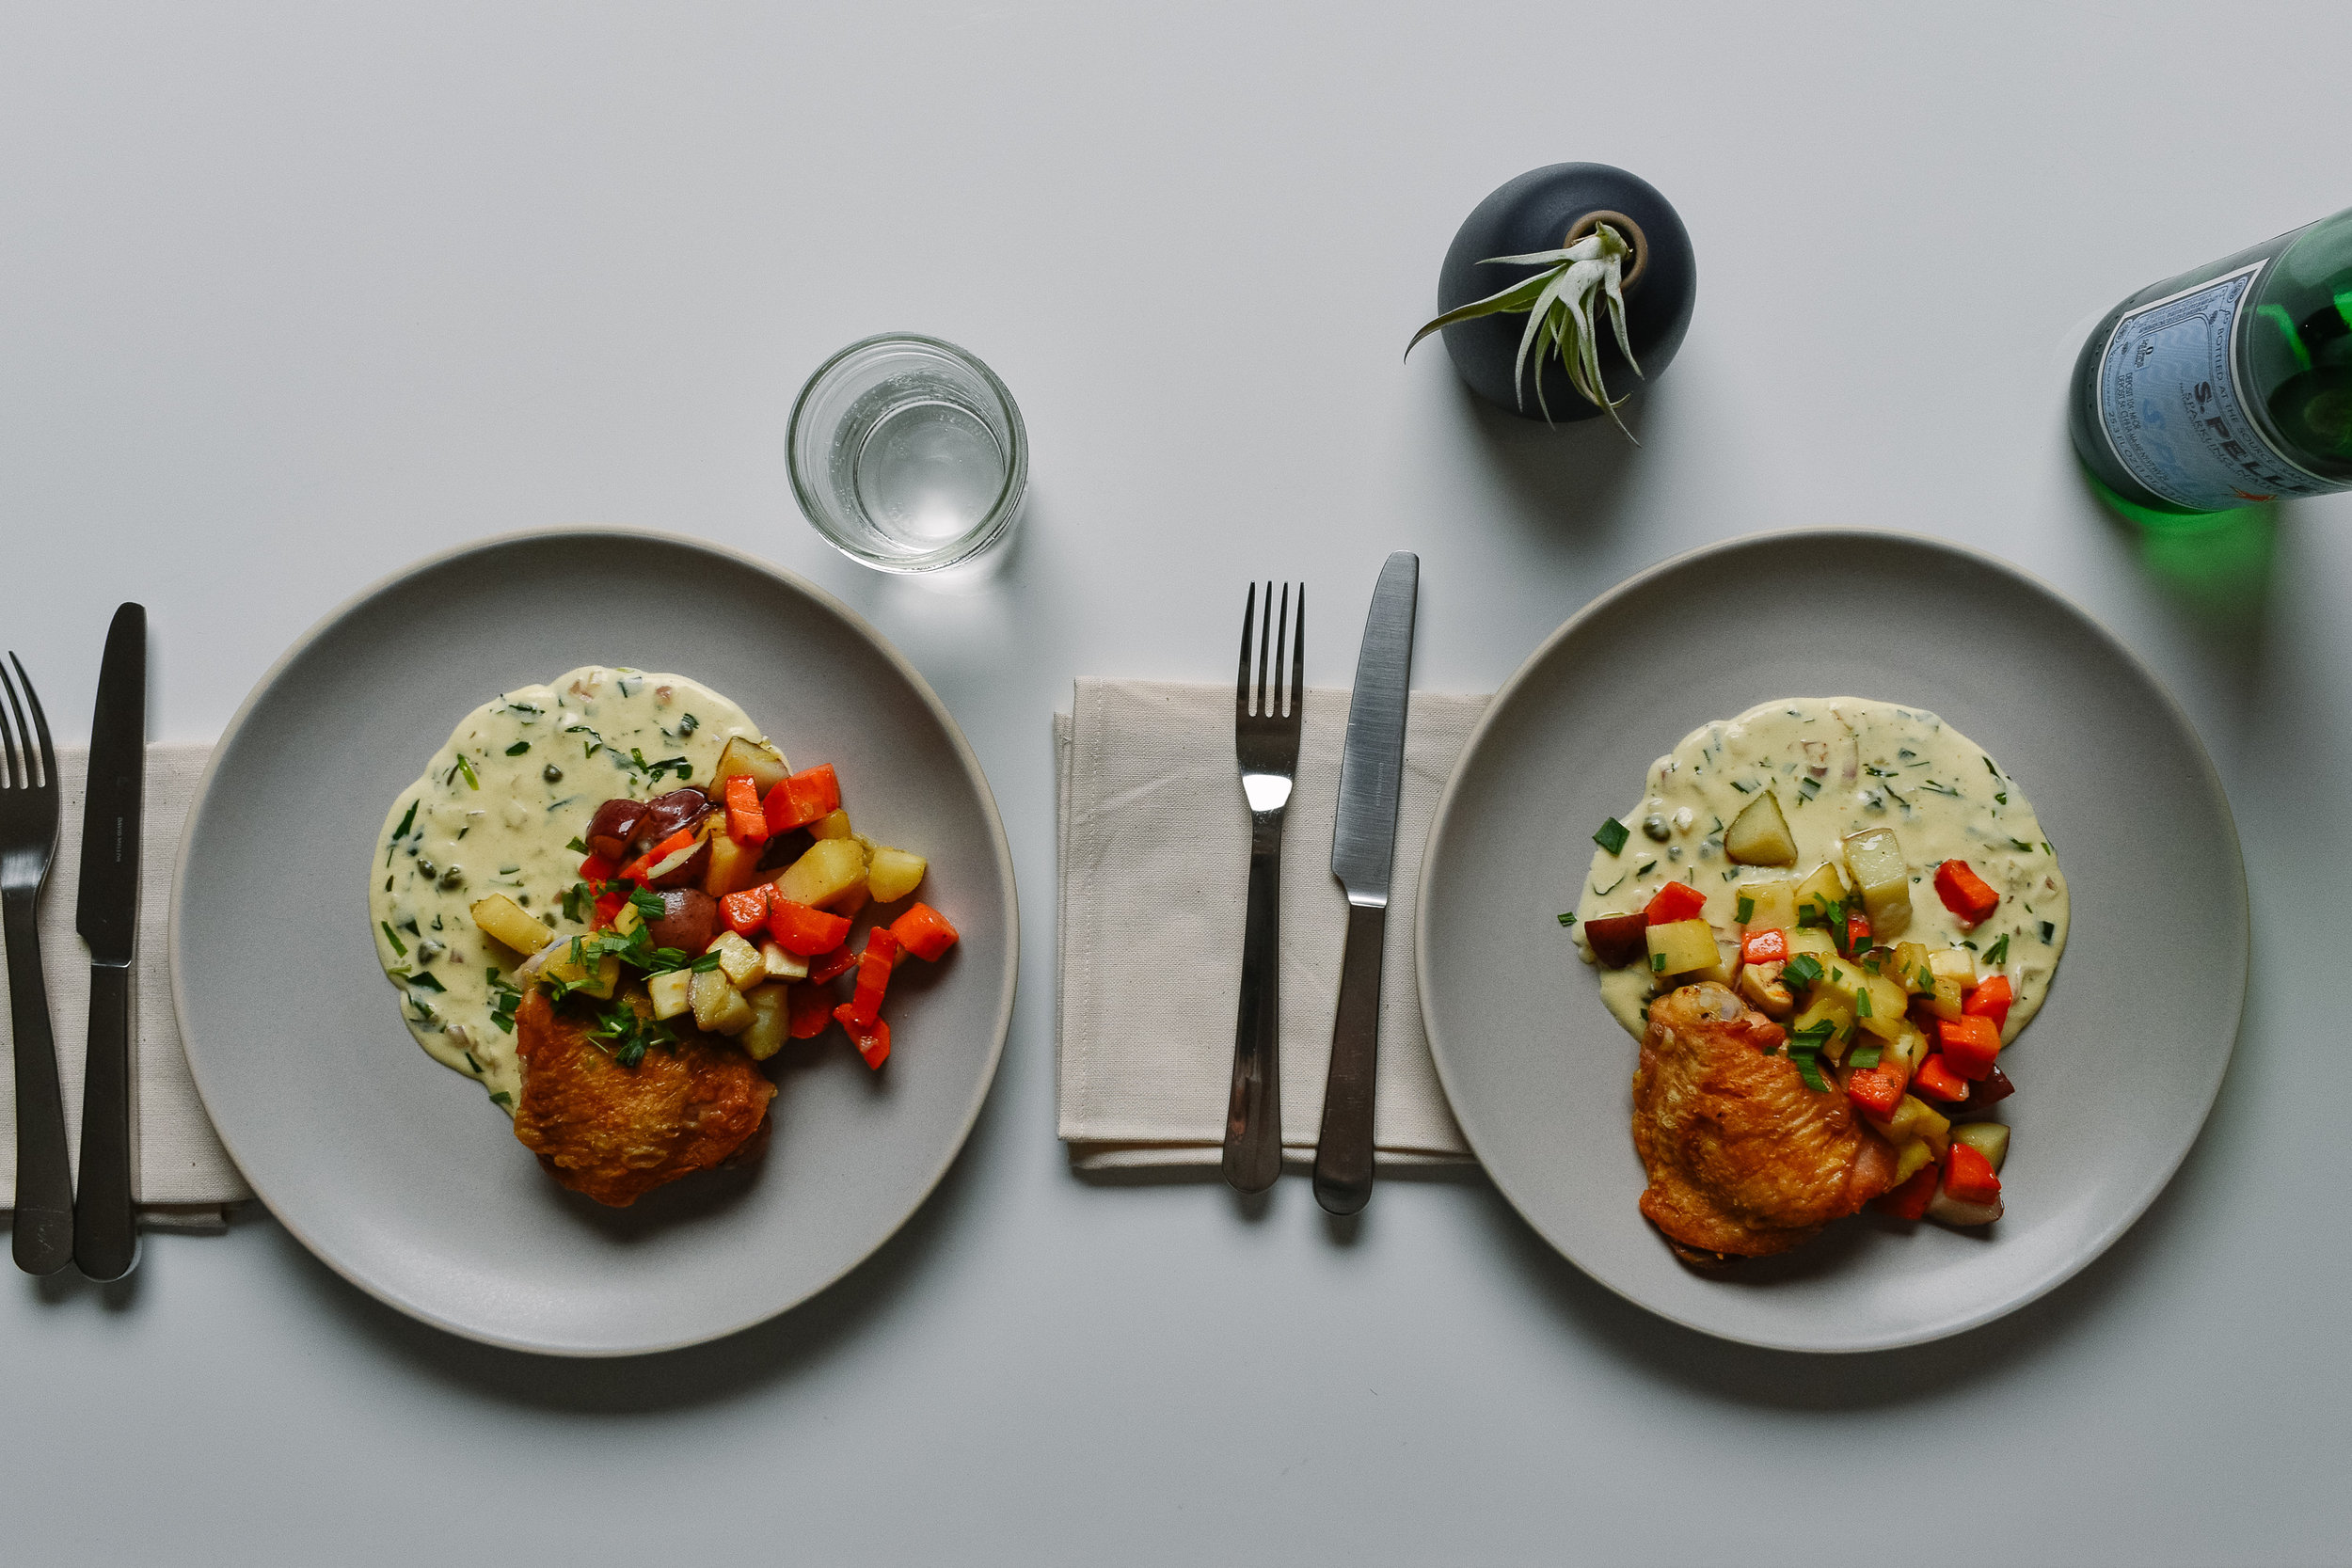 French chicken, root vegetables, and tarragon cream sauce